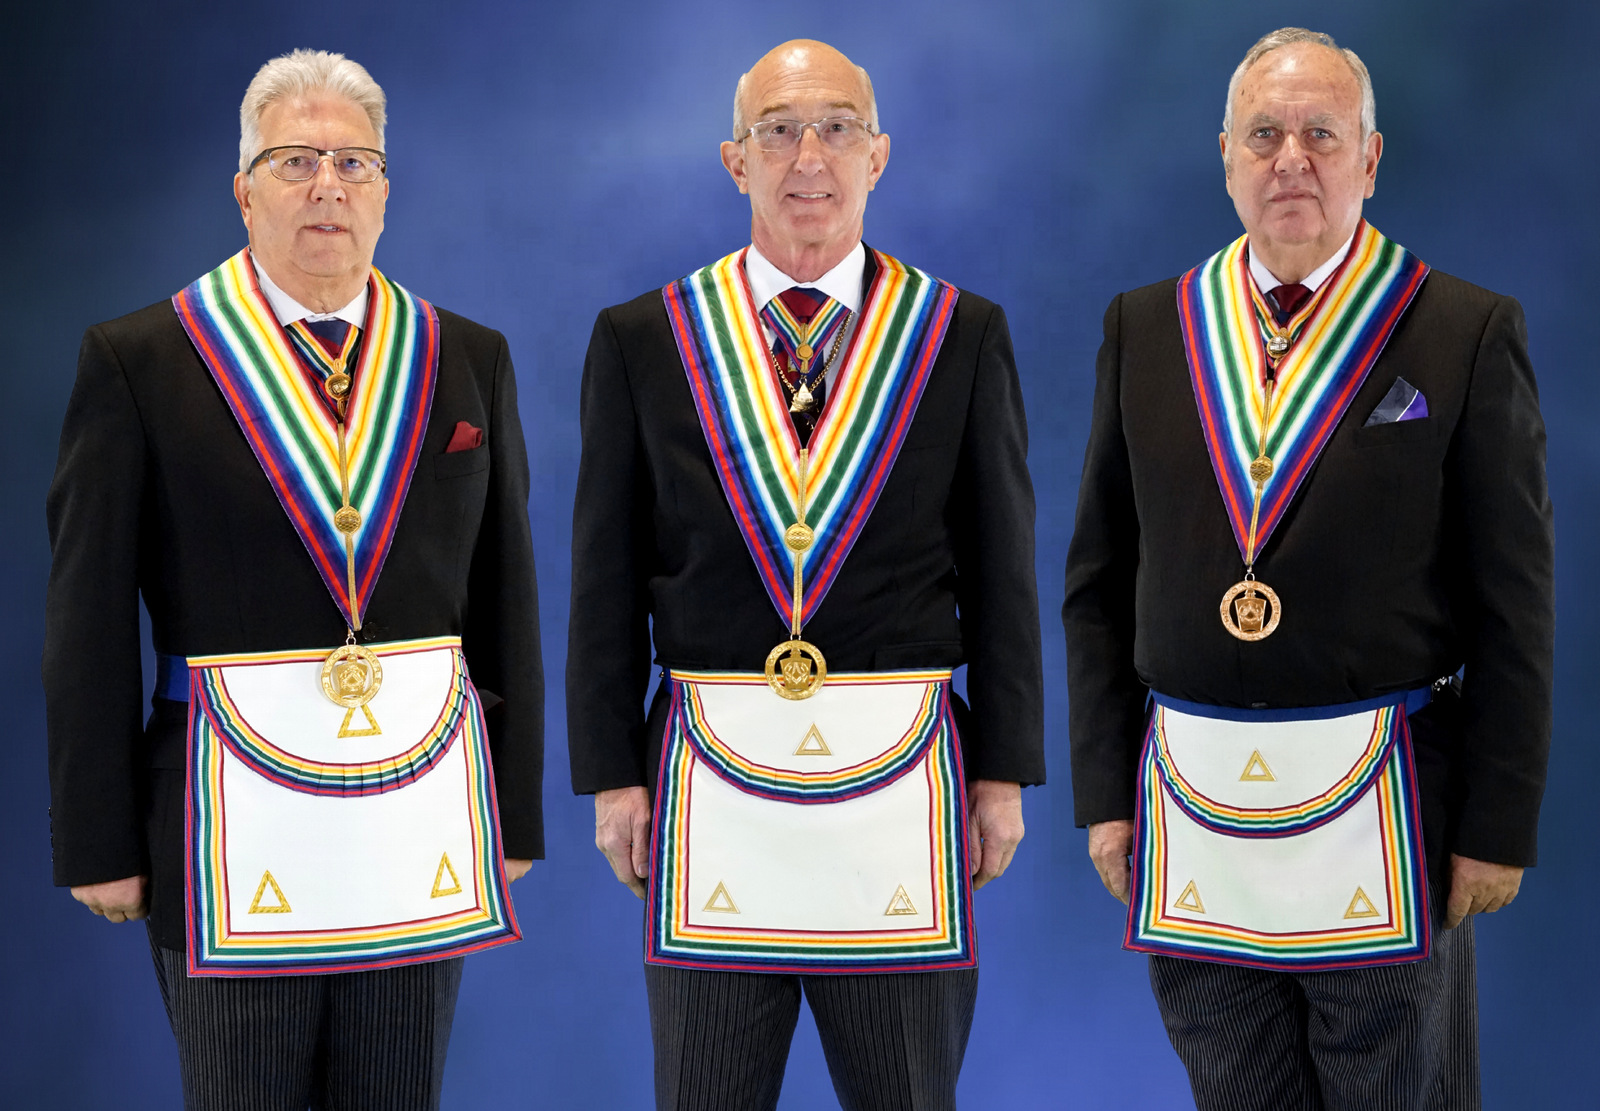 Provincial Grand Lodge of Devonshire